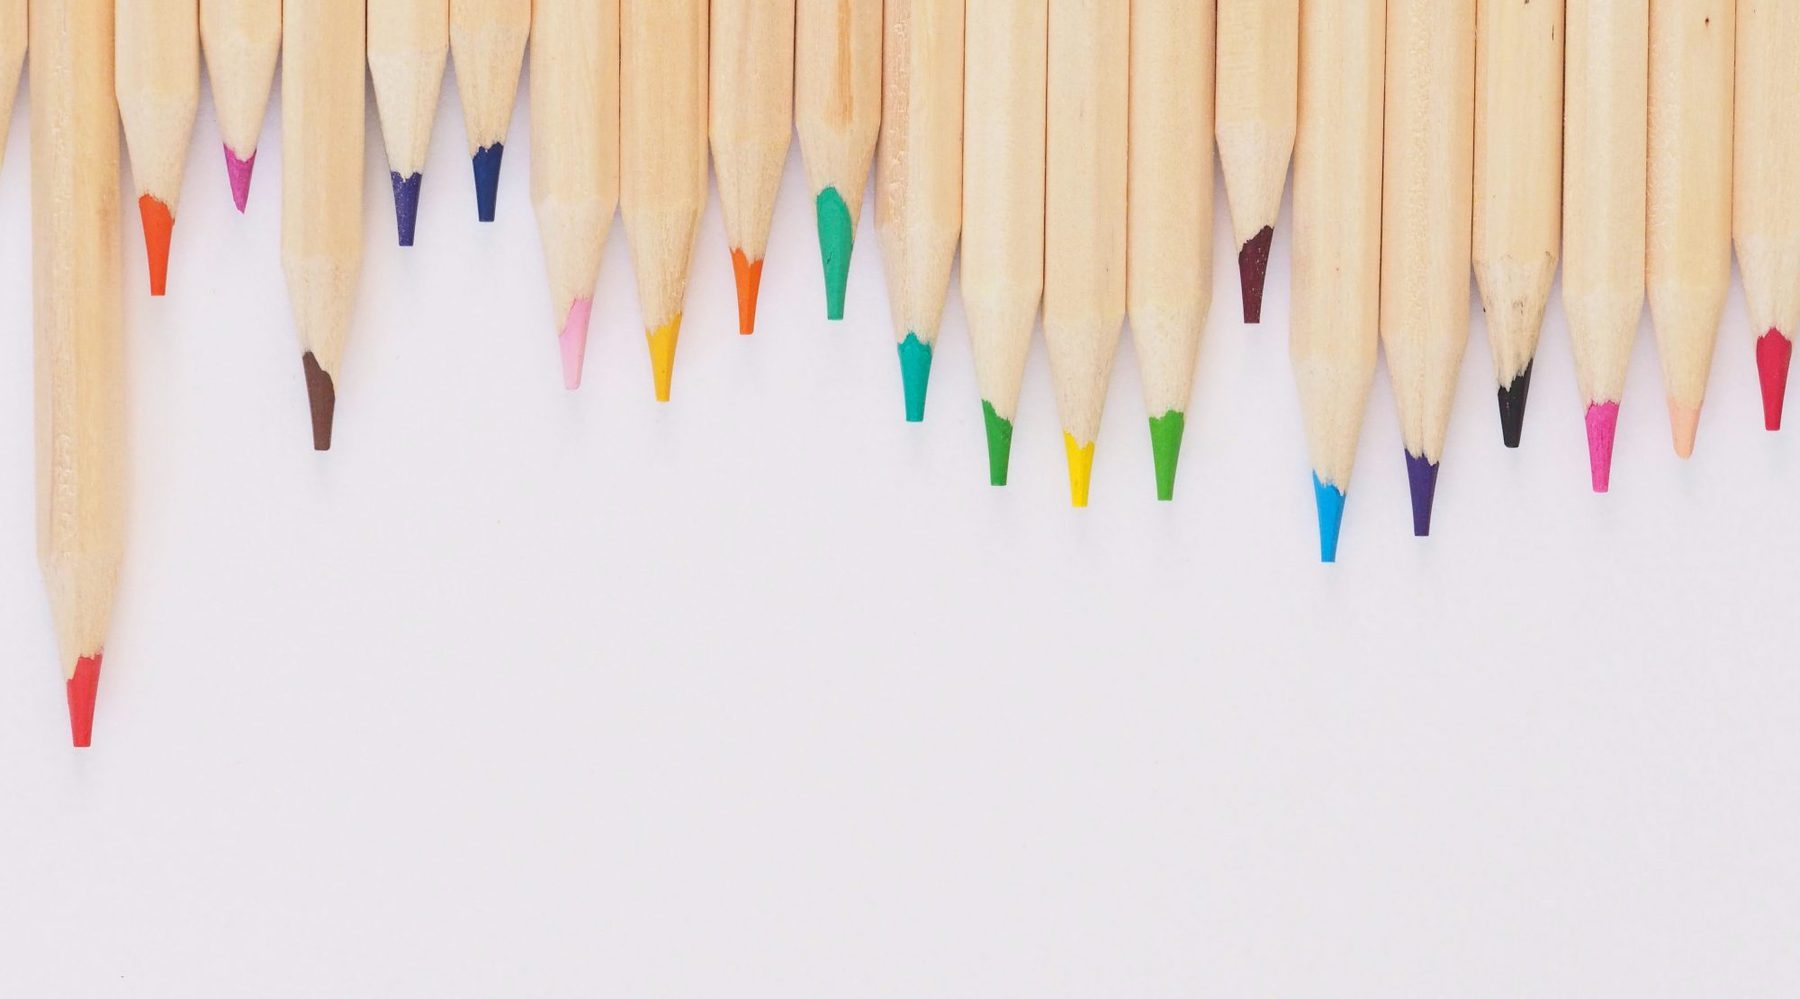 Wooden colored pencils lined up with a white background